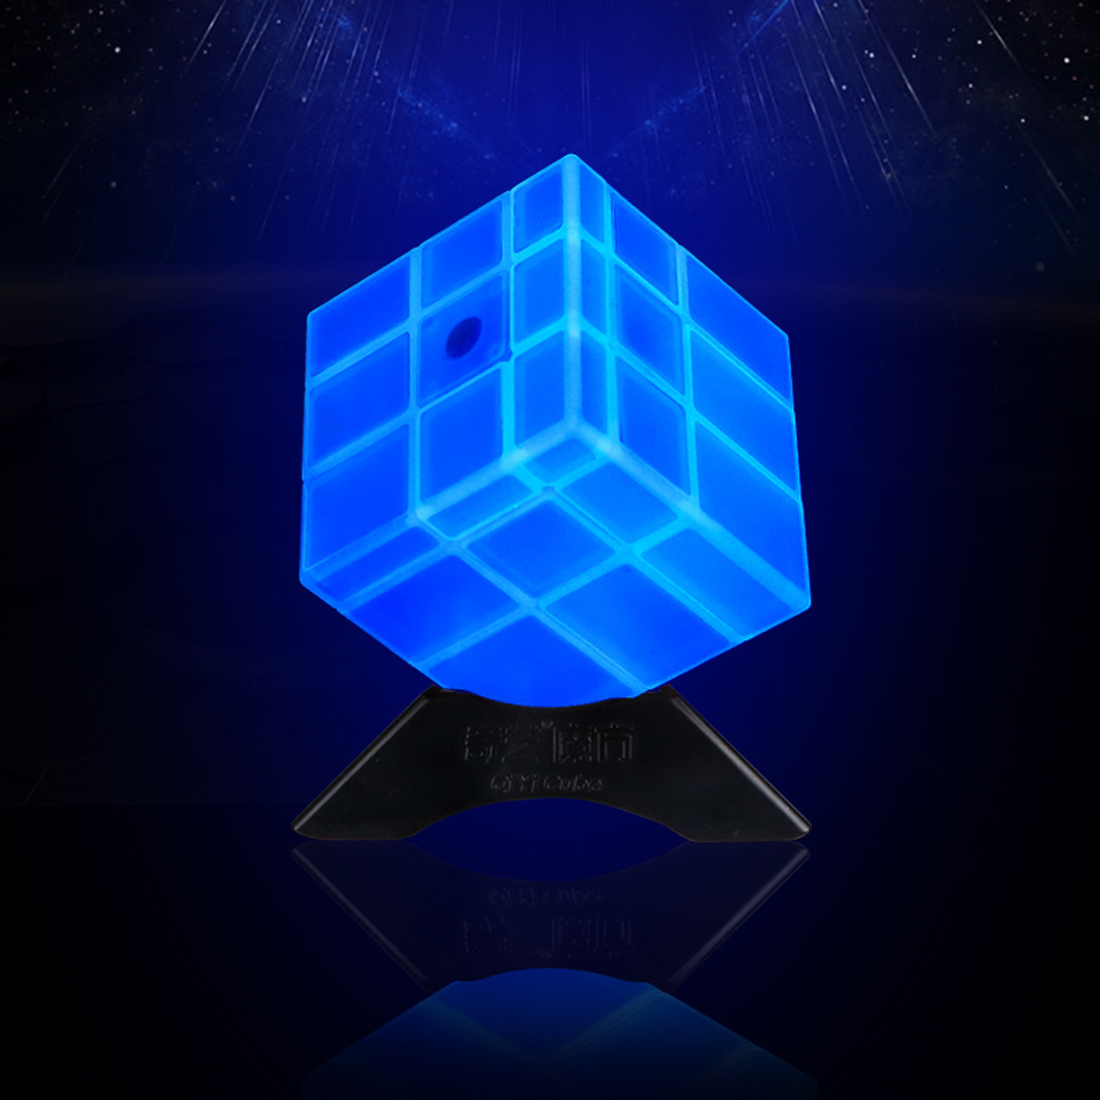 Image 3 - New QiYi 3X3X3 Mirror Blocks Luminous Magic Speed Cube Puzzle Cubo Magico Professional Learning&Educational Classic Toys Cube-in Magic Cubes from Toys & Hobbies